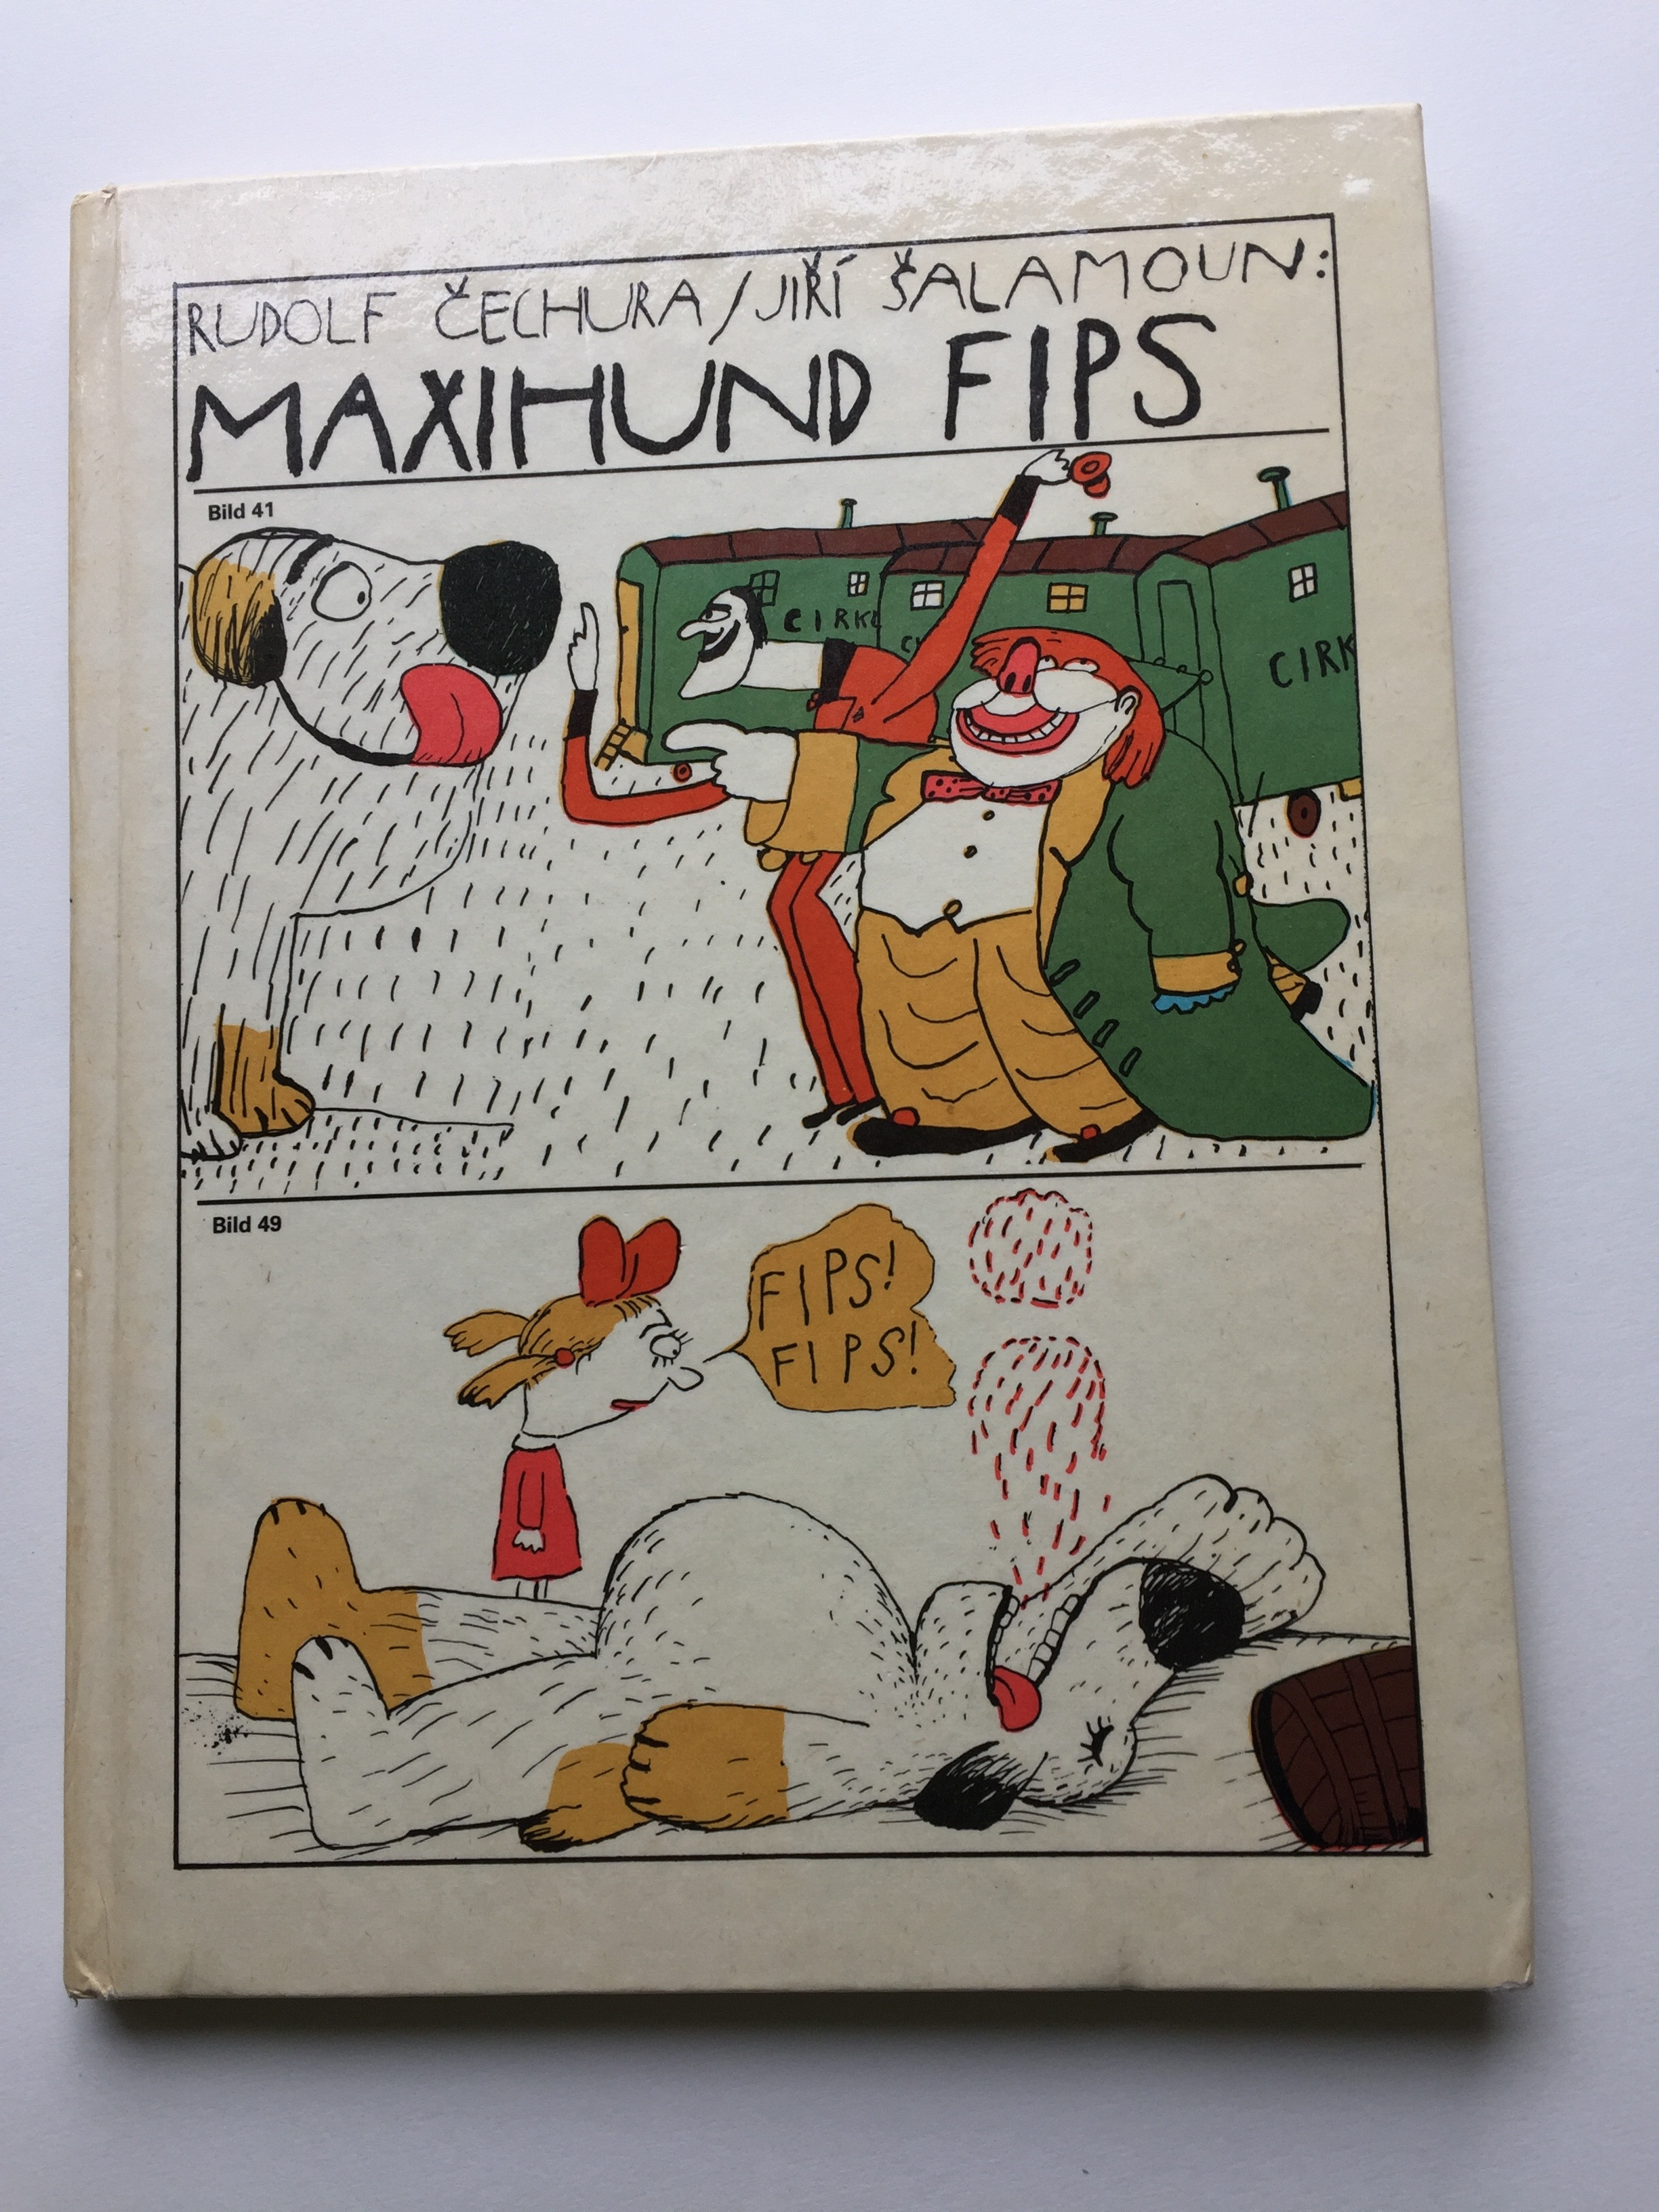 Maxihund Fips Book Cover